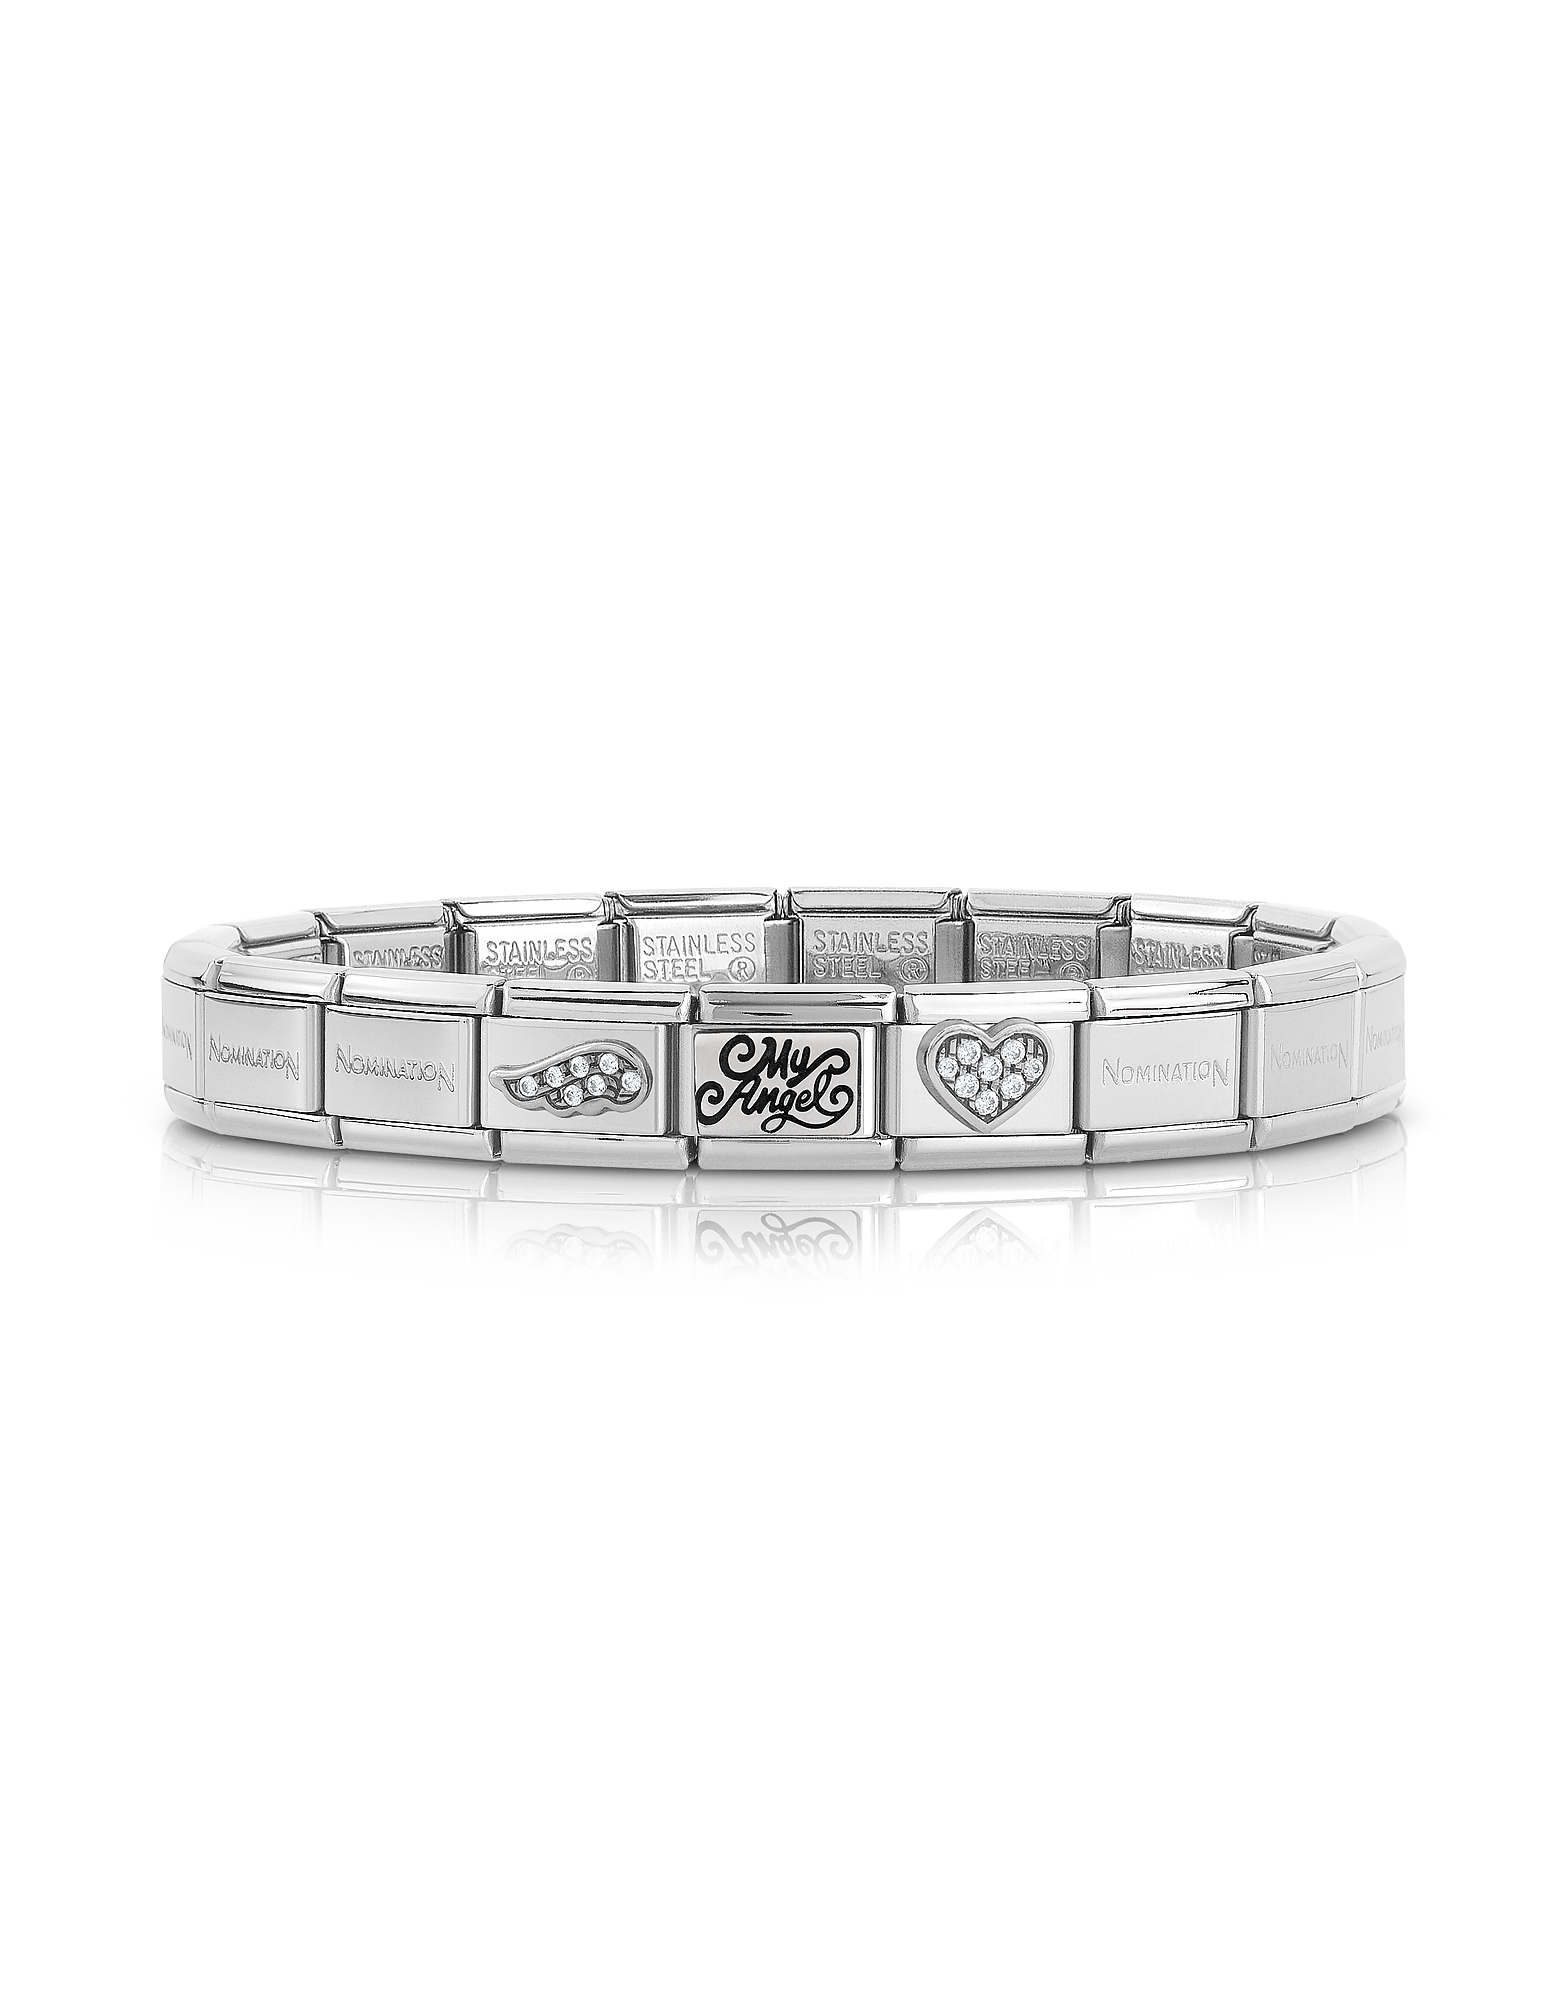 Nomination Bracelets, Classic My Angel Stainless Steel Women's Bracelet w/Cubic Zirconia